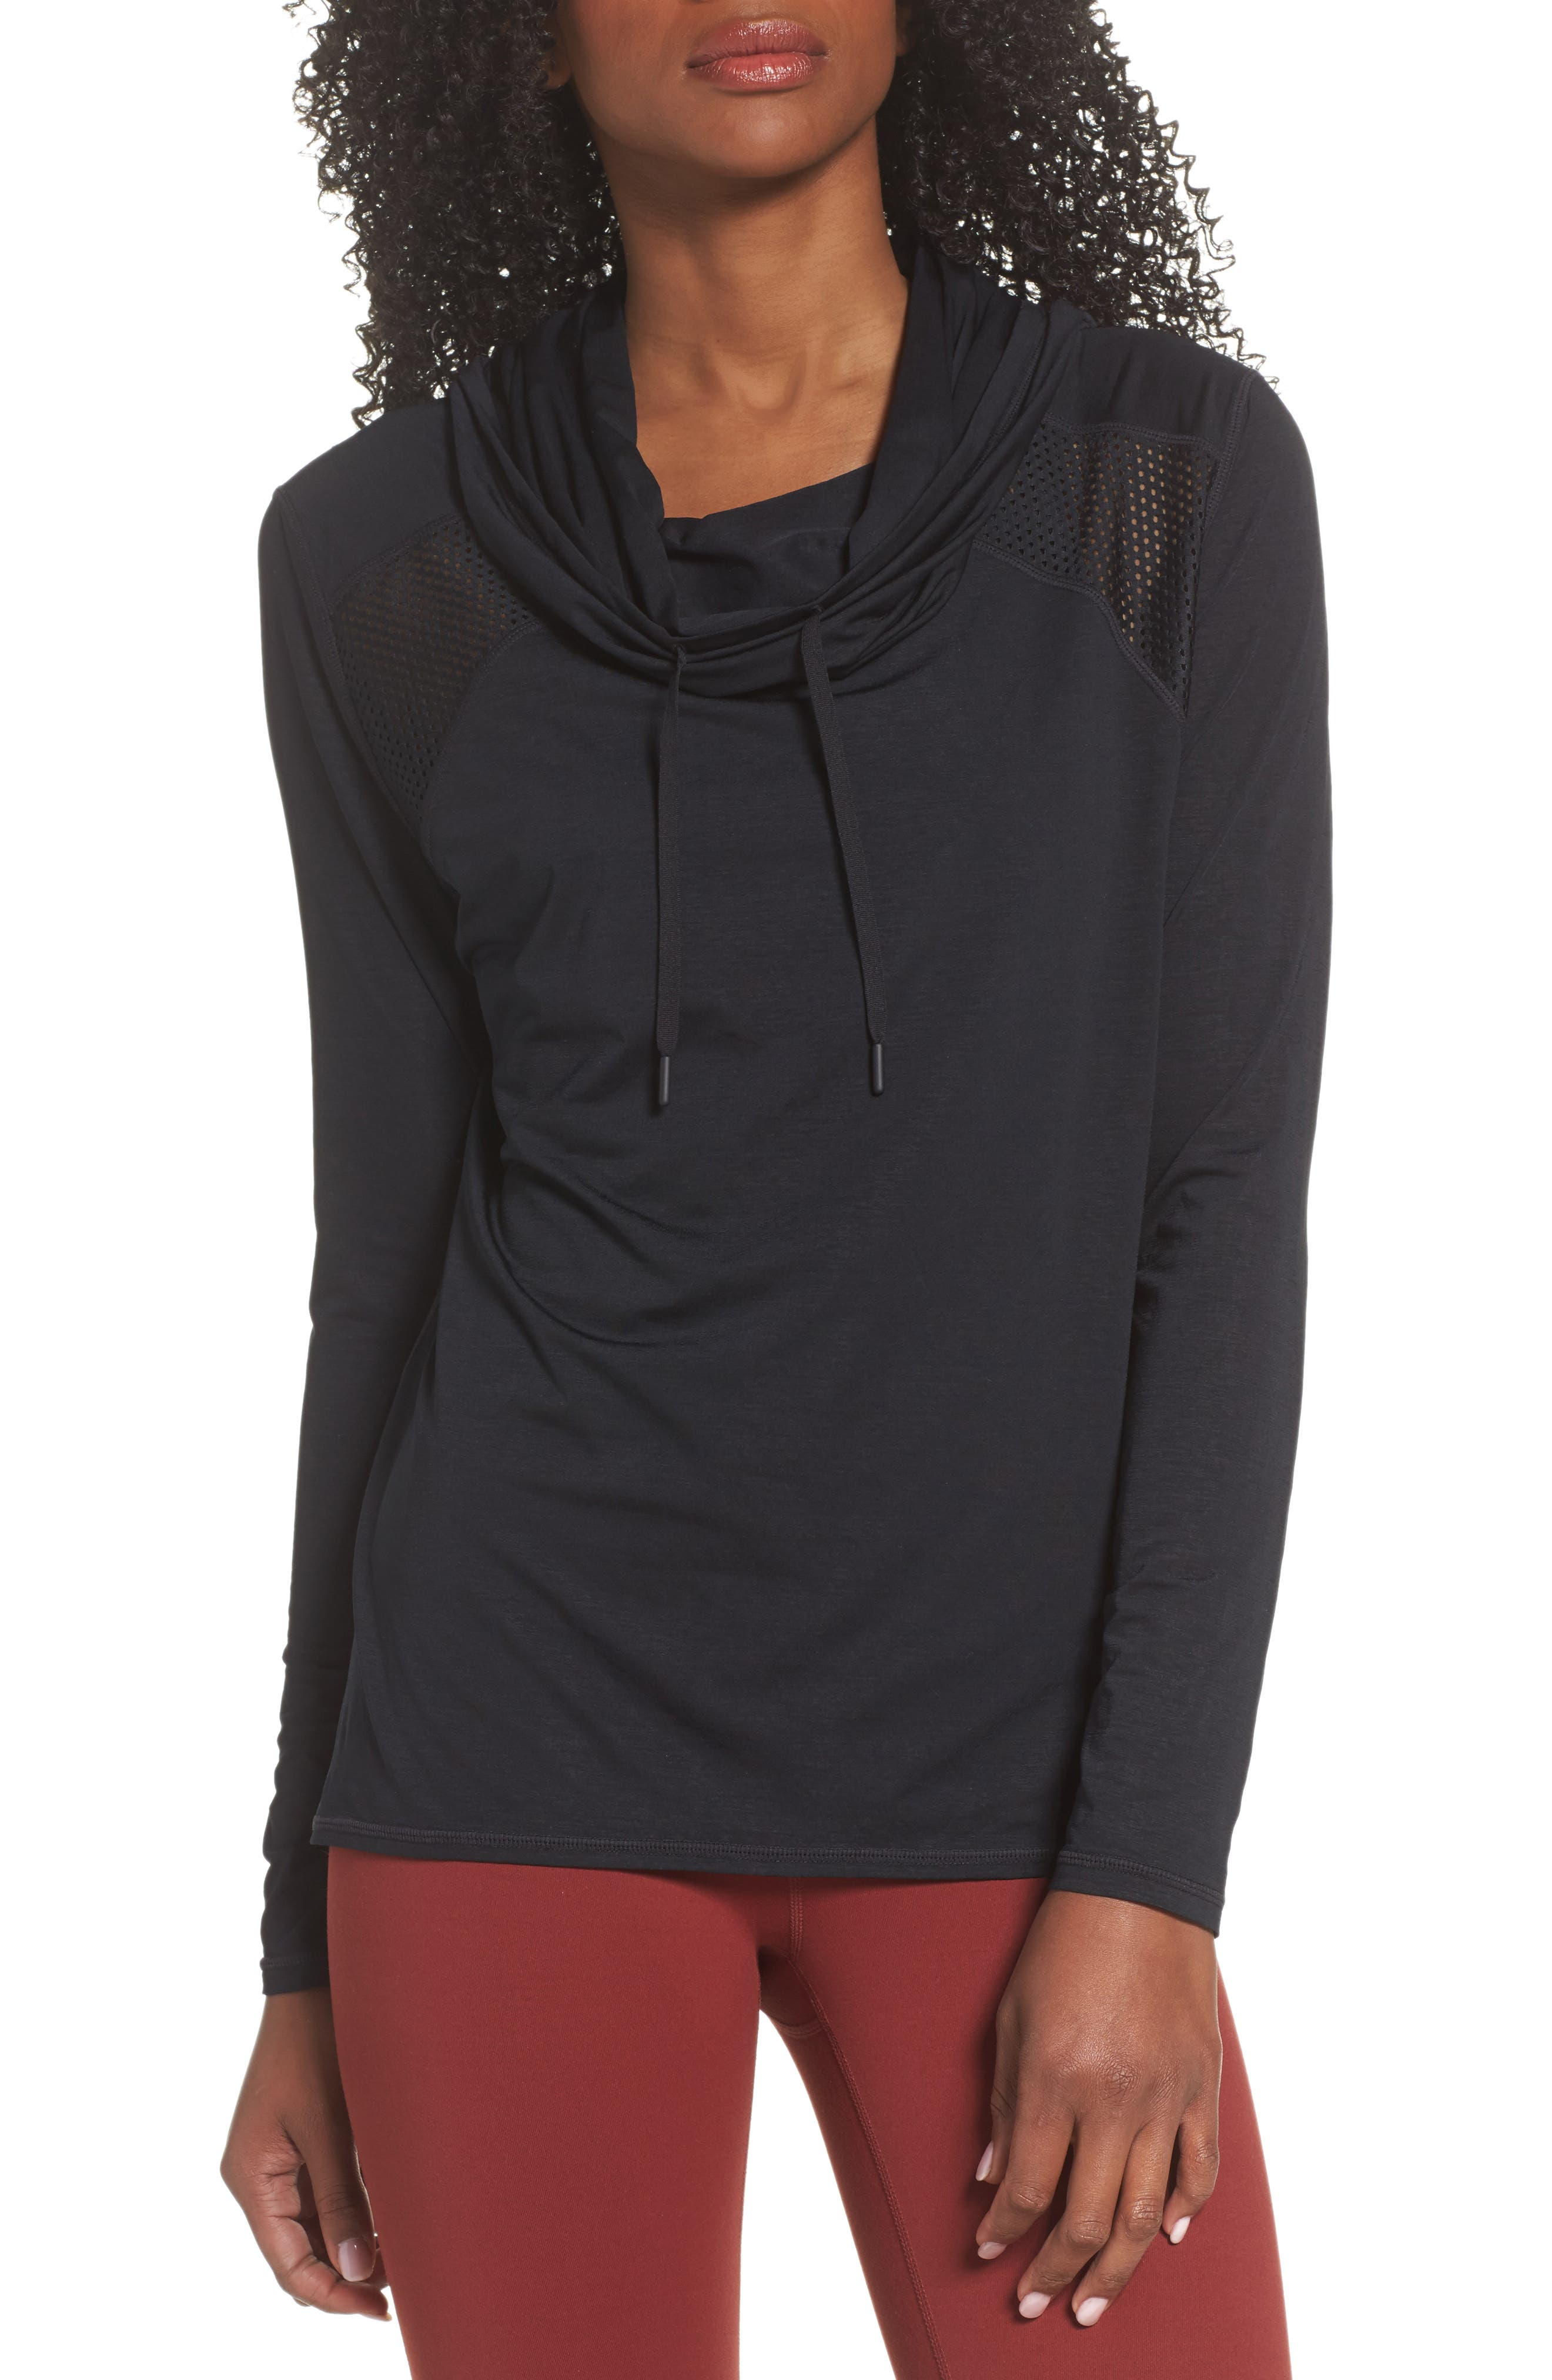 Adventure 2 Hooded Top,                         Main,                         color, 001